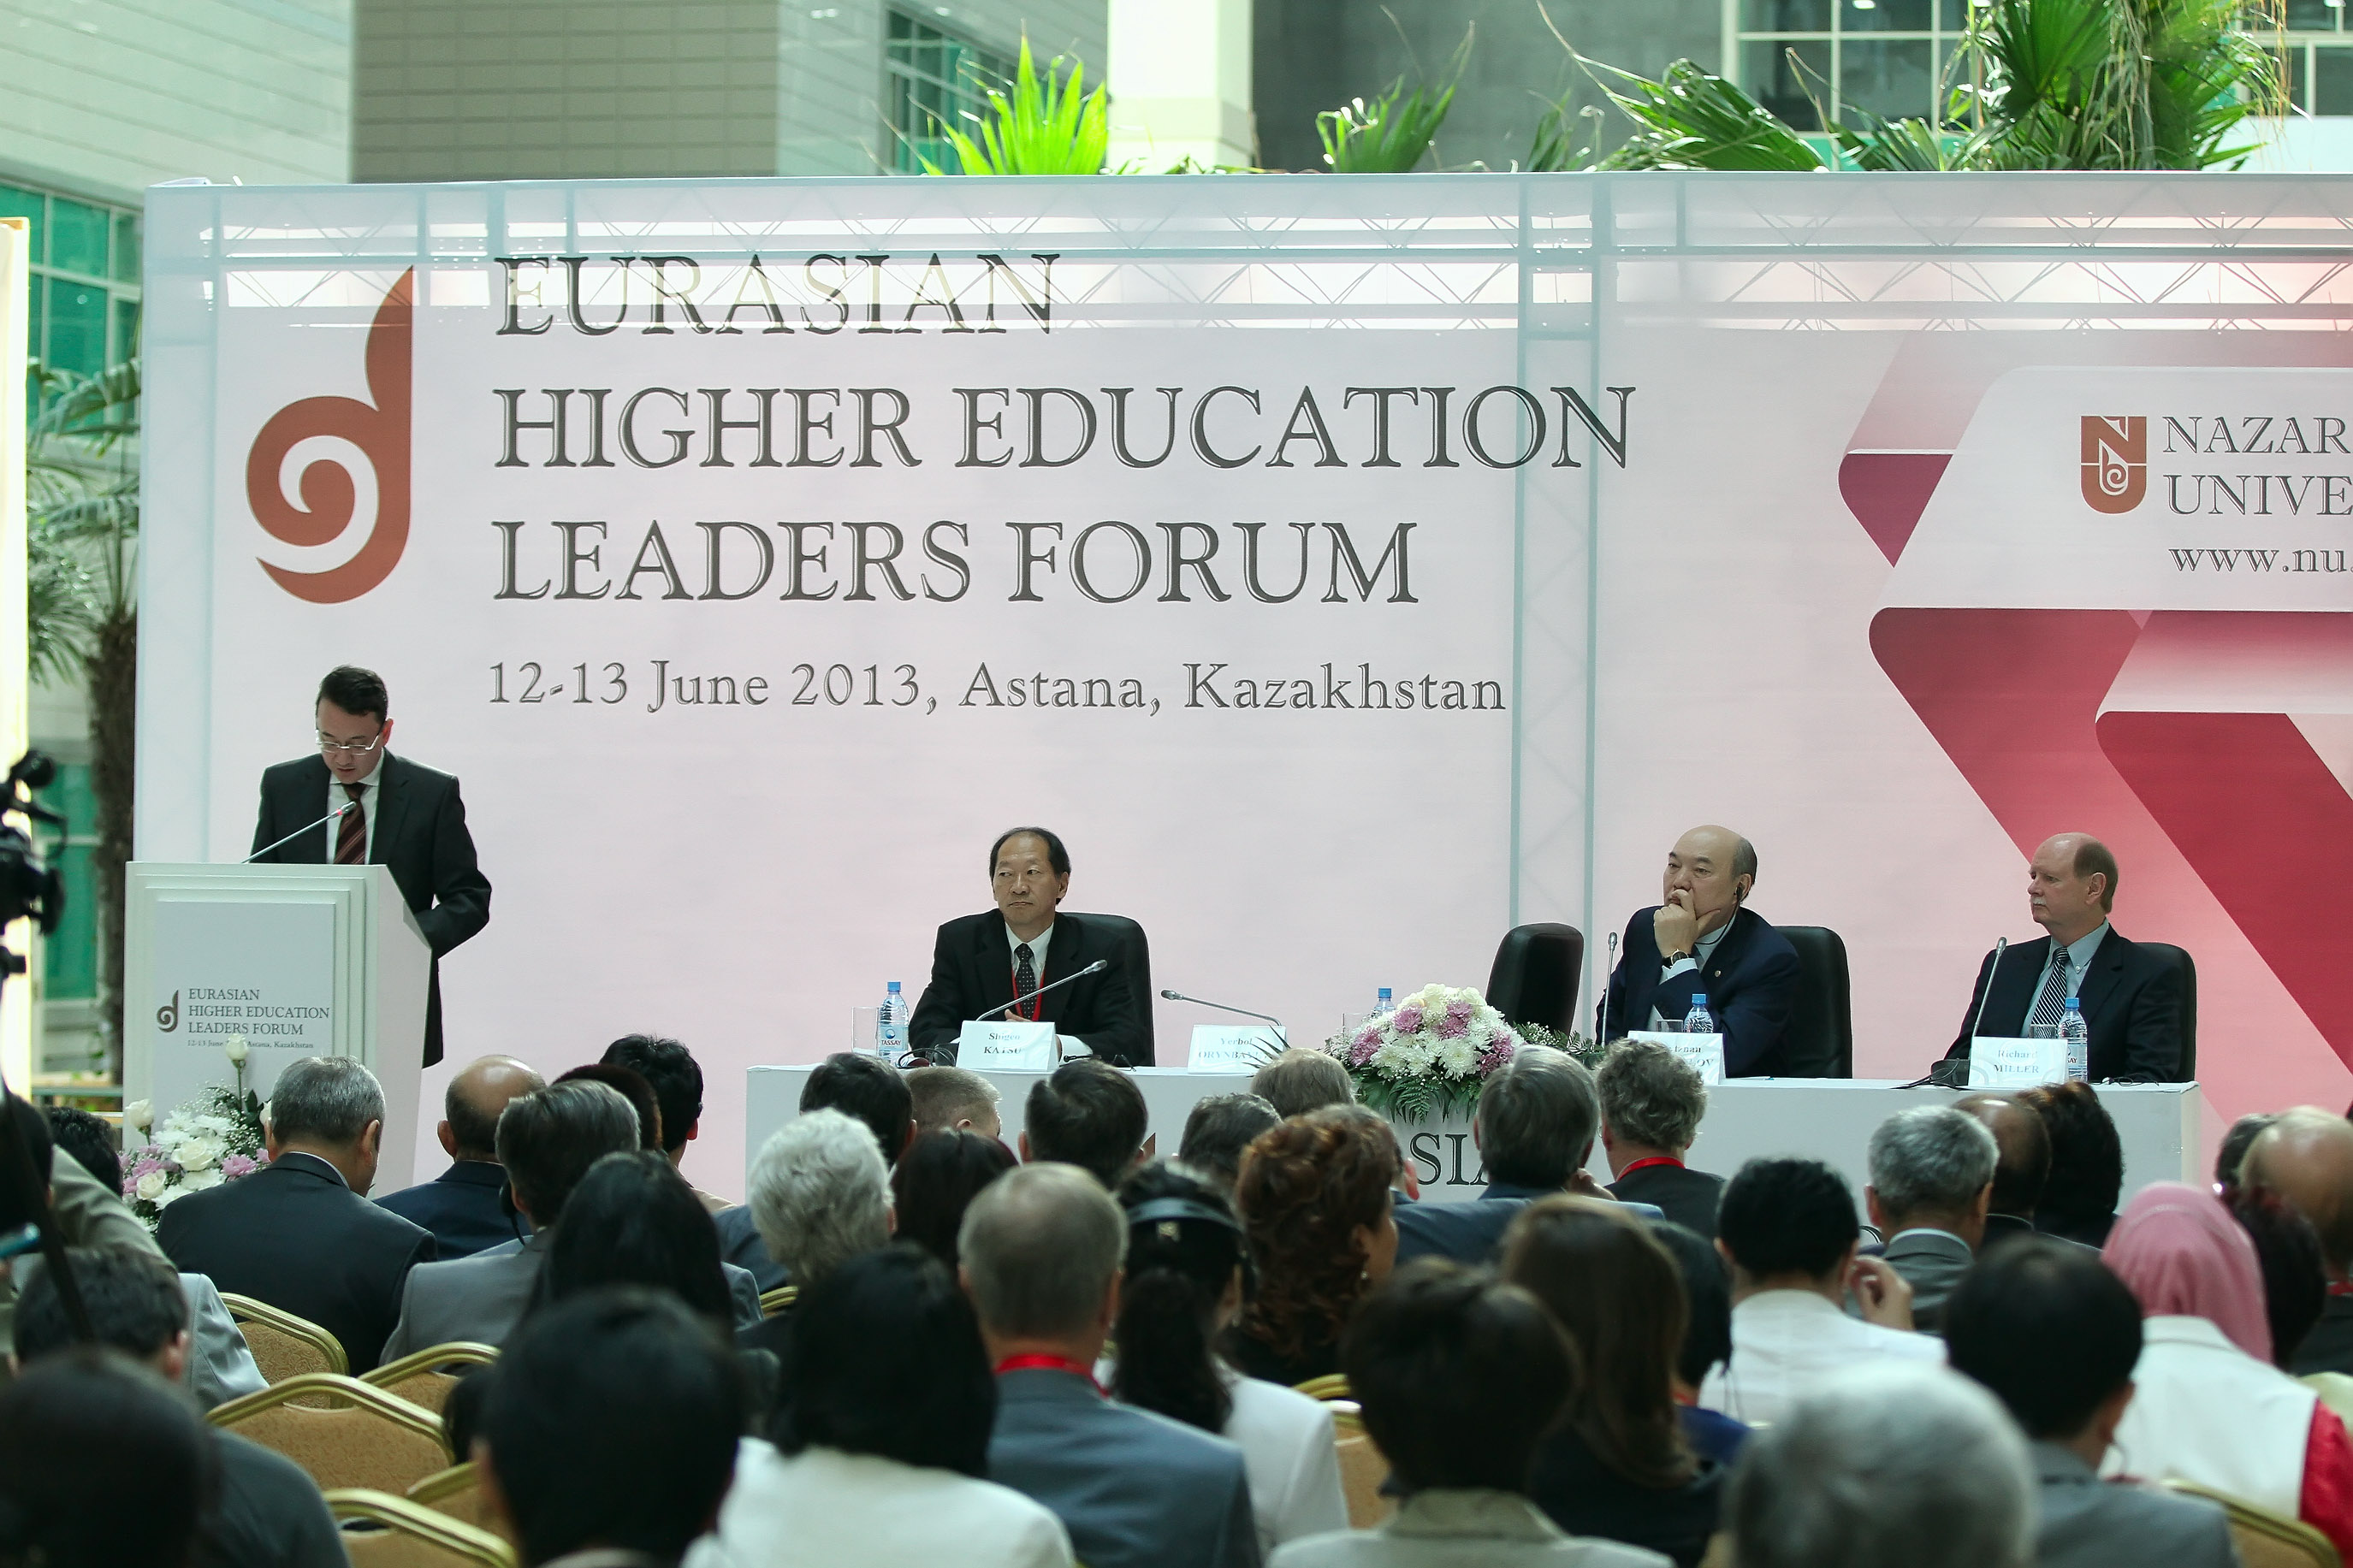 Deputy Prime Minister Yerbol Orynbayev welcomes the conference crowd. Photo courtesy of Nazarbayev University.